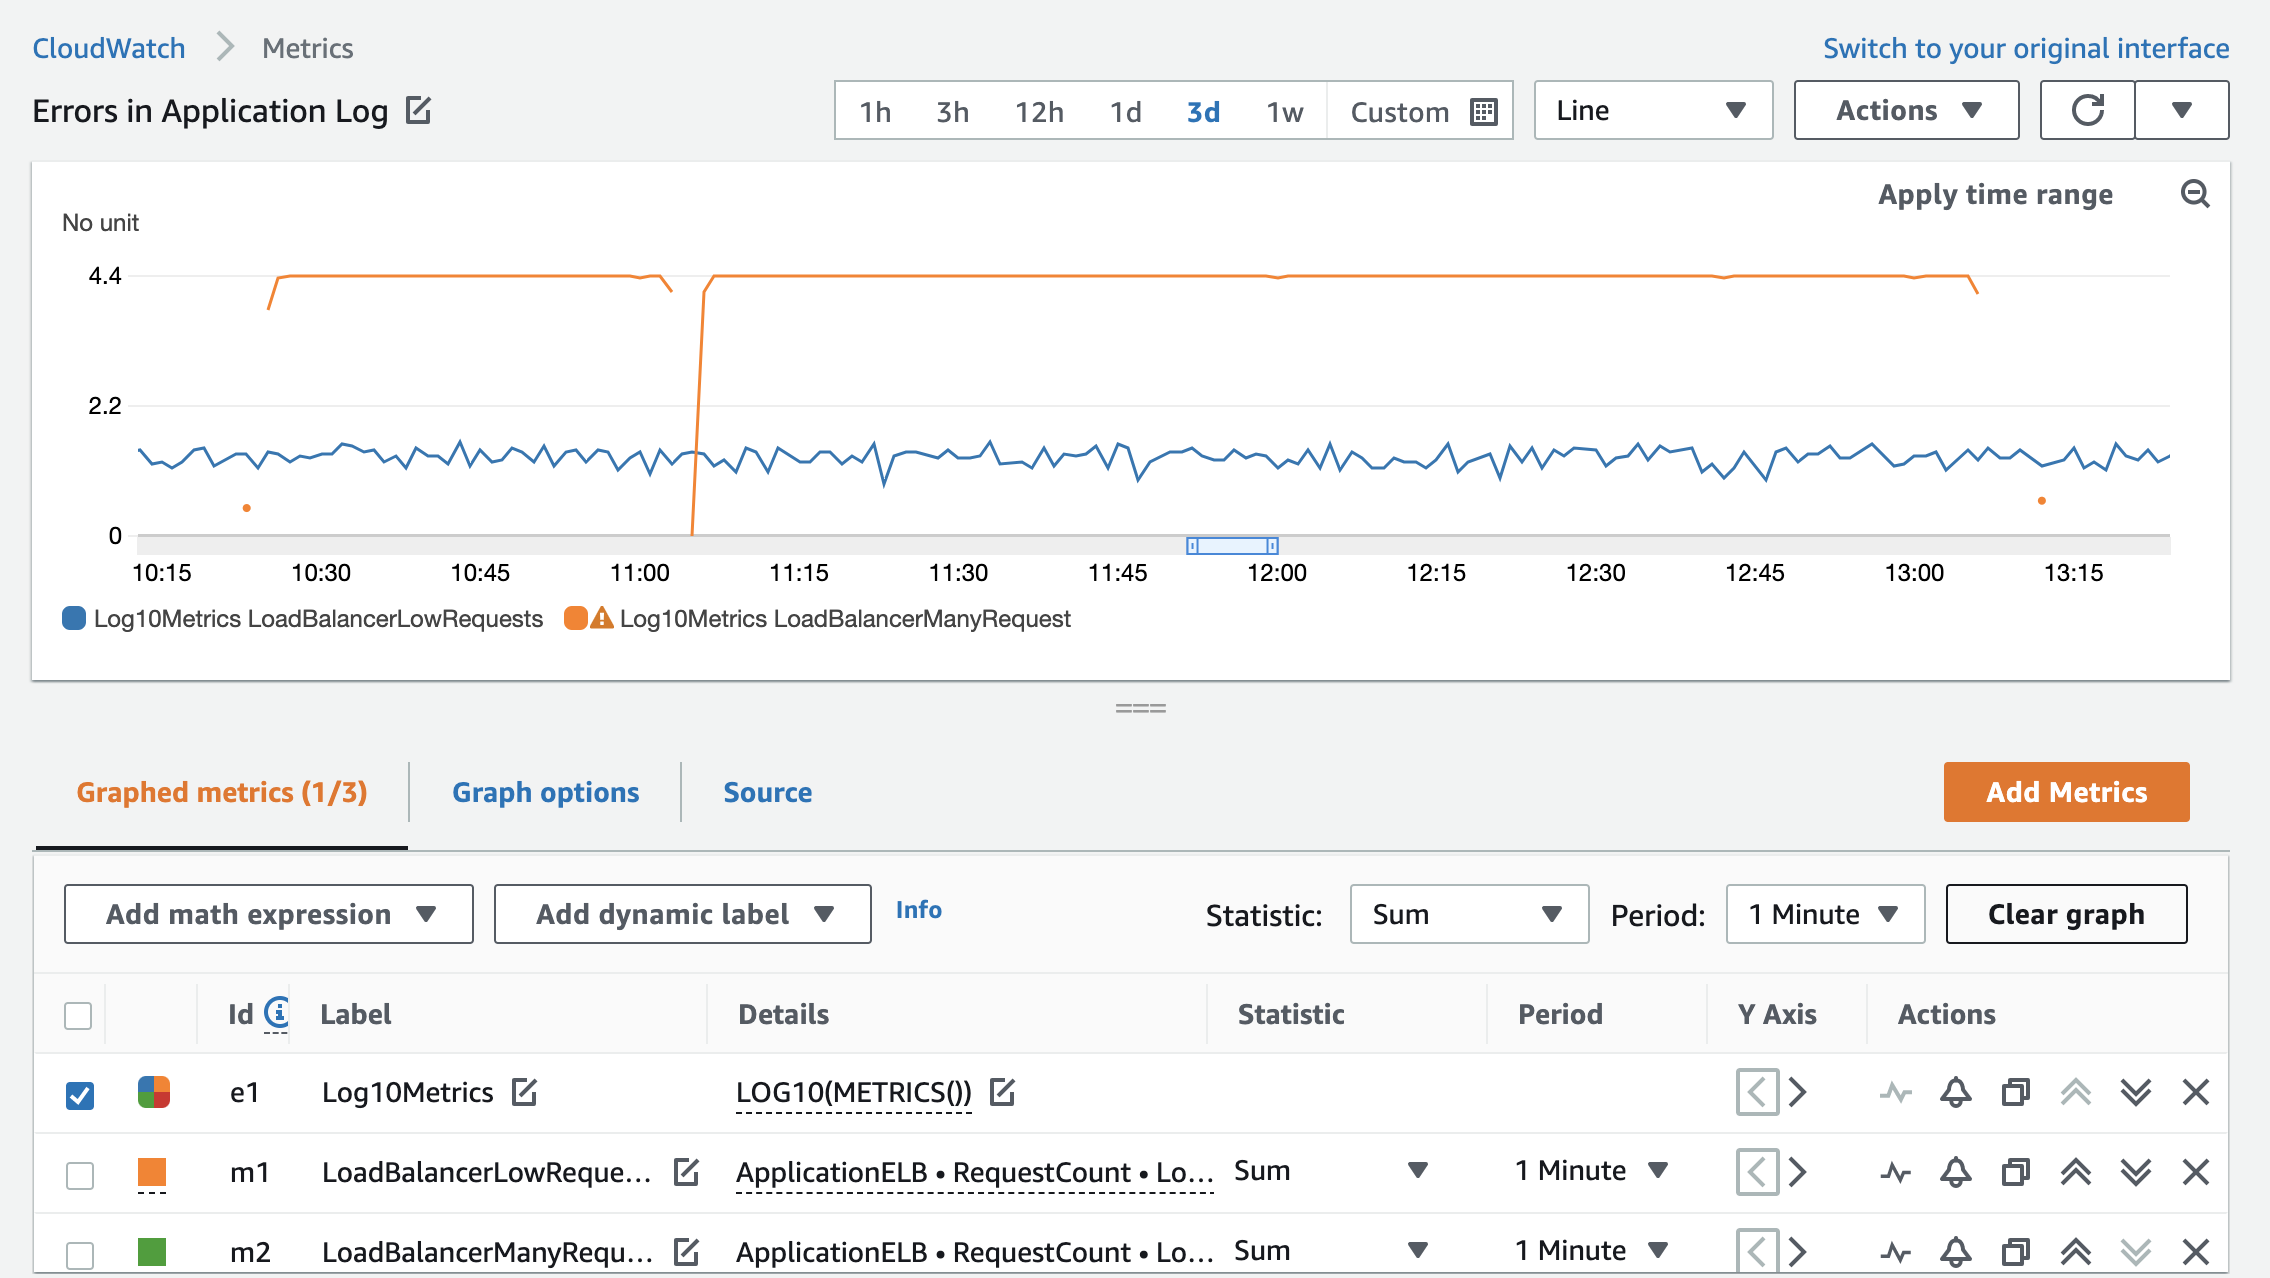 The low request load balancer now displays more variance and trends in the metric are easier to identify.